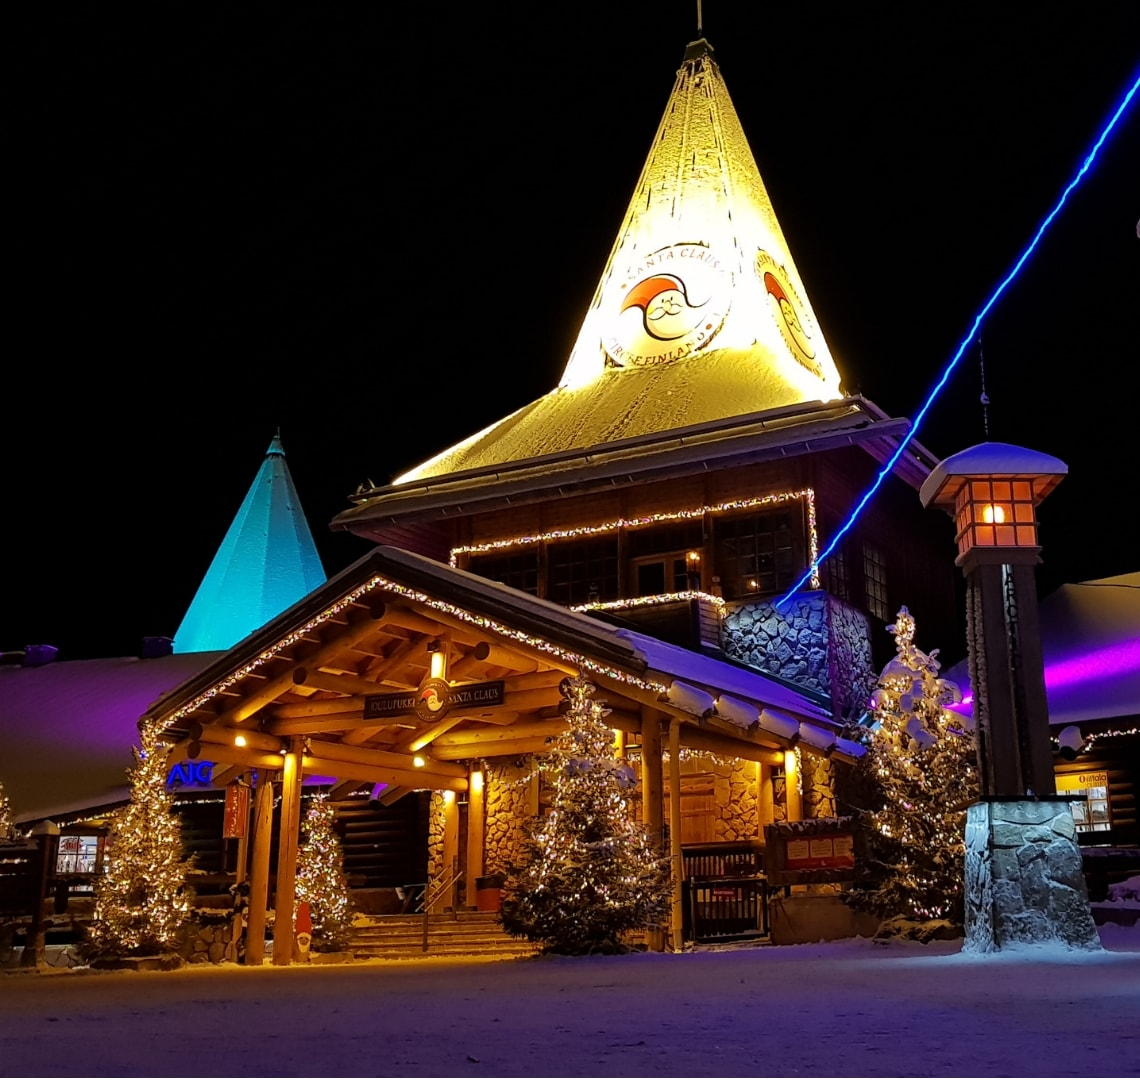 Best family holiday destinations - Santa's Office in the Santa Claus Village